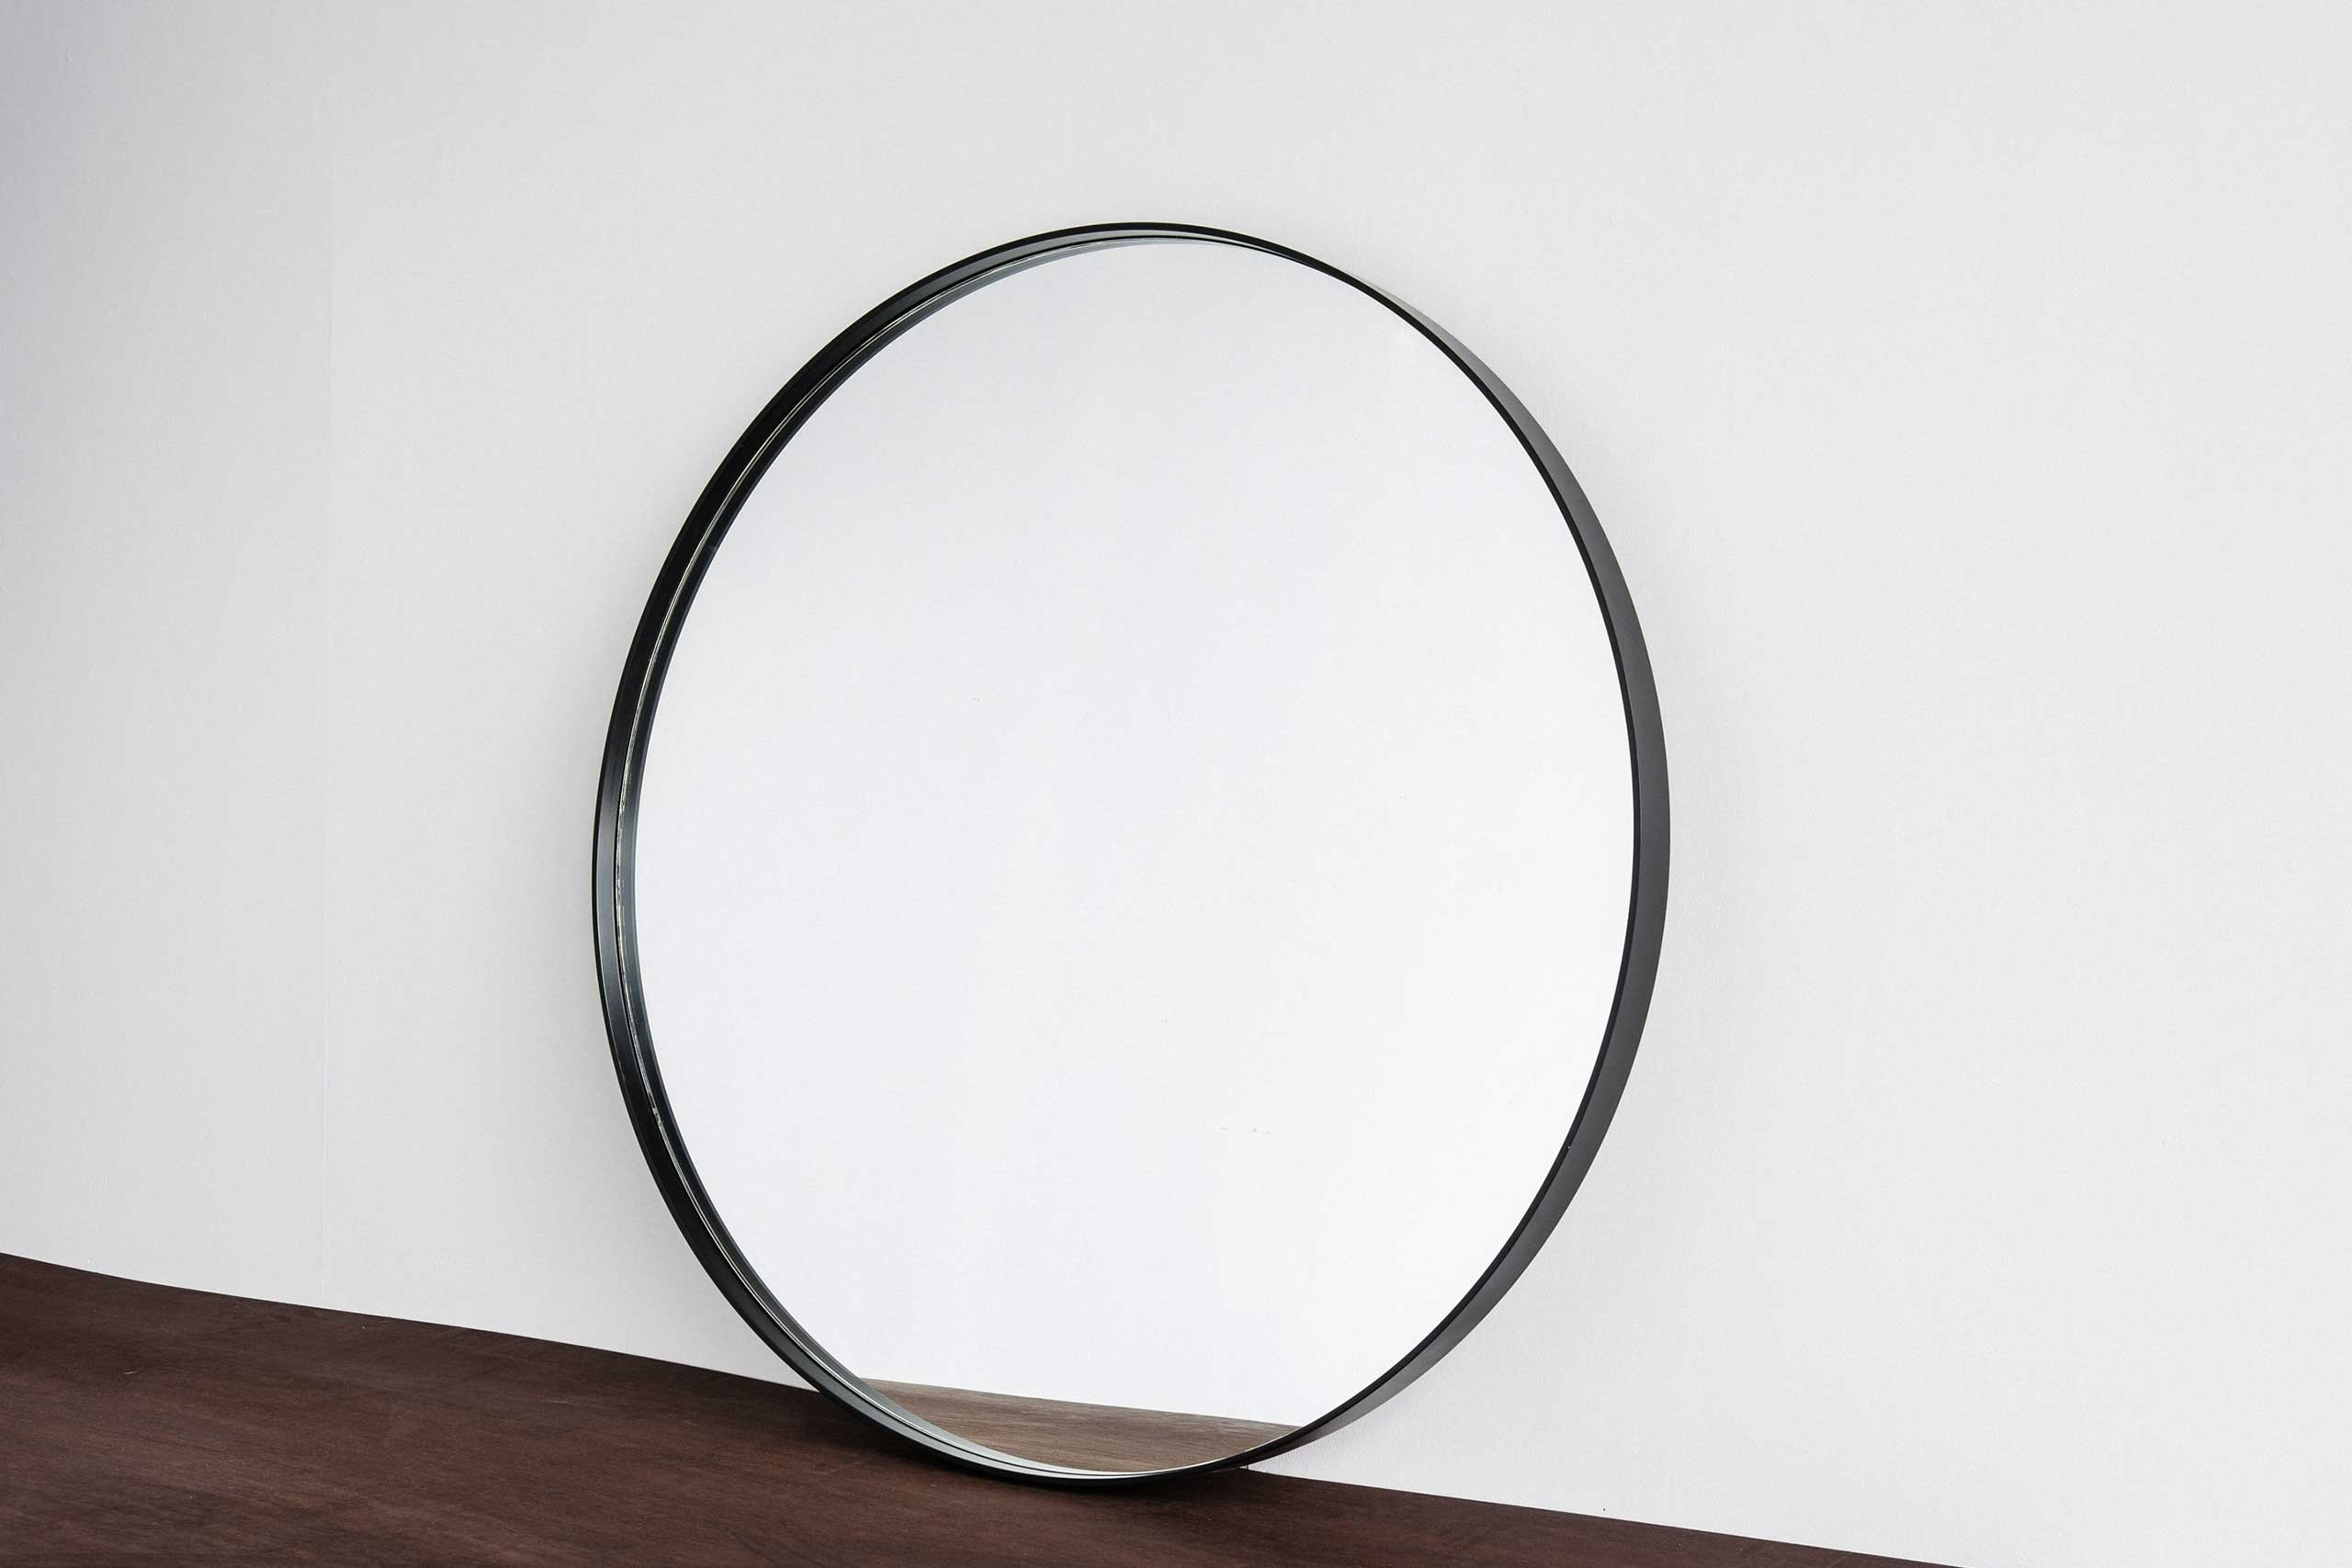 Home Industry Furniture Designed Handcrafted In New Zealand 2016 For Large Circle Mirrors (Image 7 of 15)